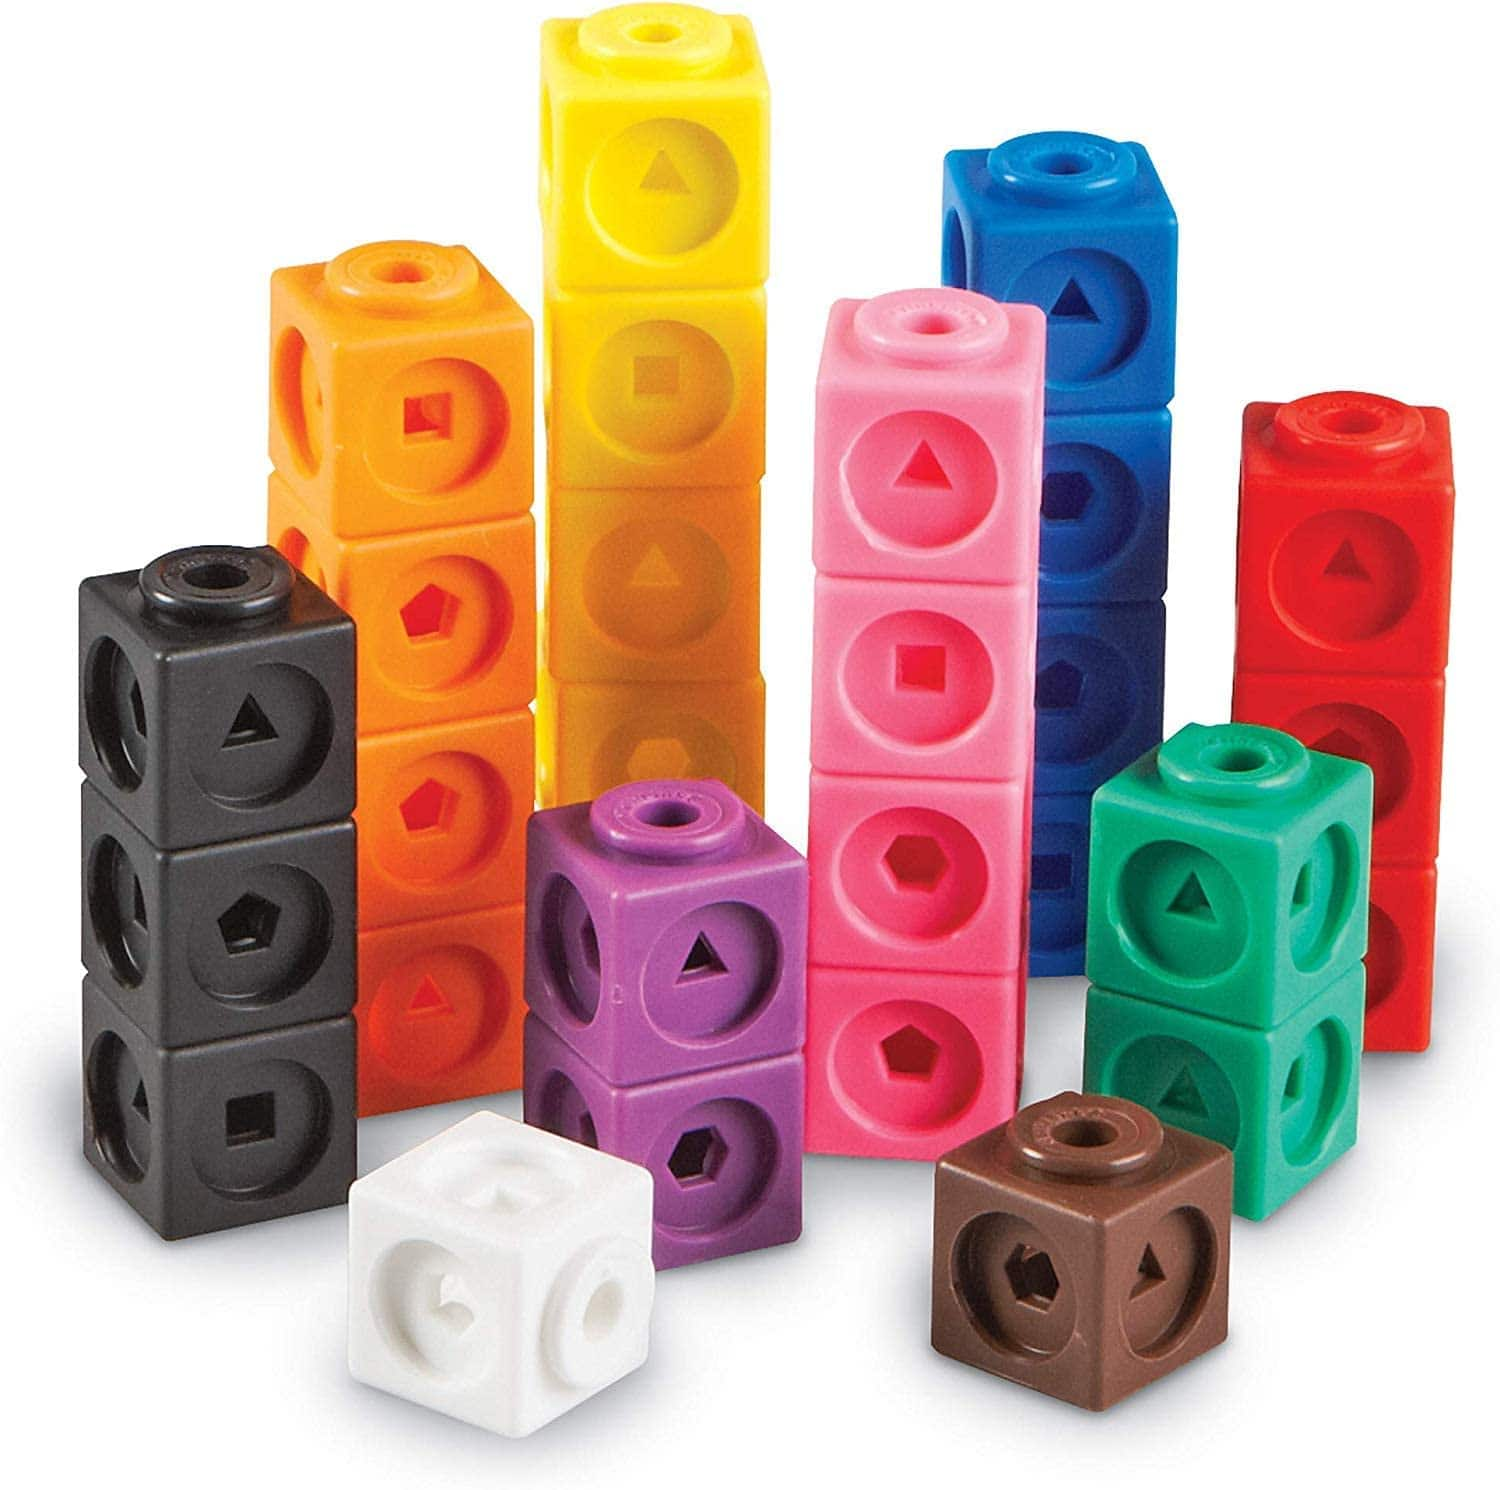 100-Piece Learning Resources Mathlink Cubes $10, 50-Piece Learning Resources Let's Go Code Kids' Activity Set $16, More + Free Shipping w/ Prime or on $25+